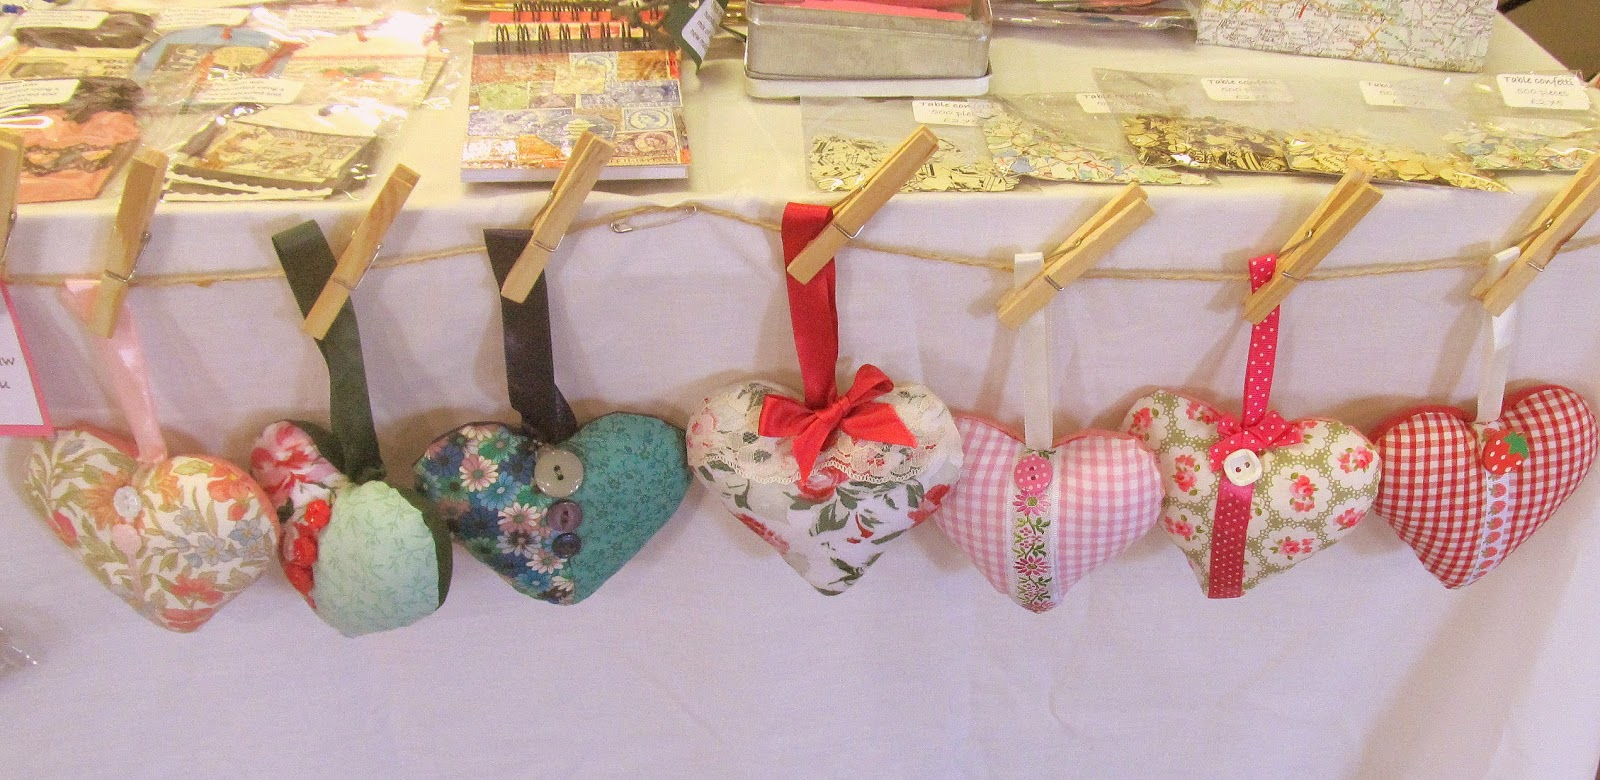 Pink Flamingo Handcrafting stall